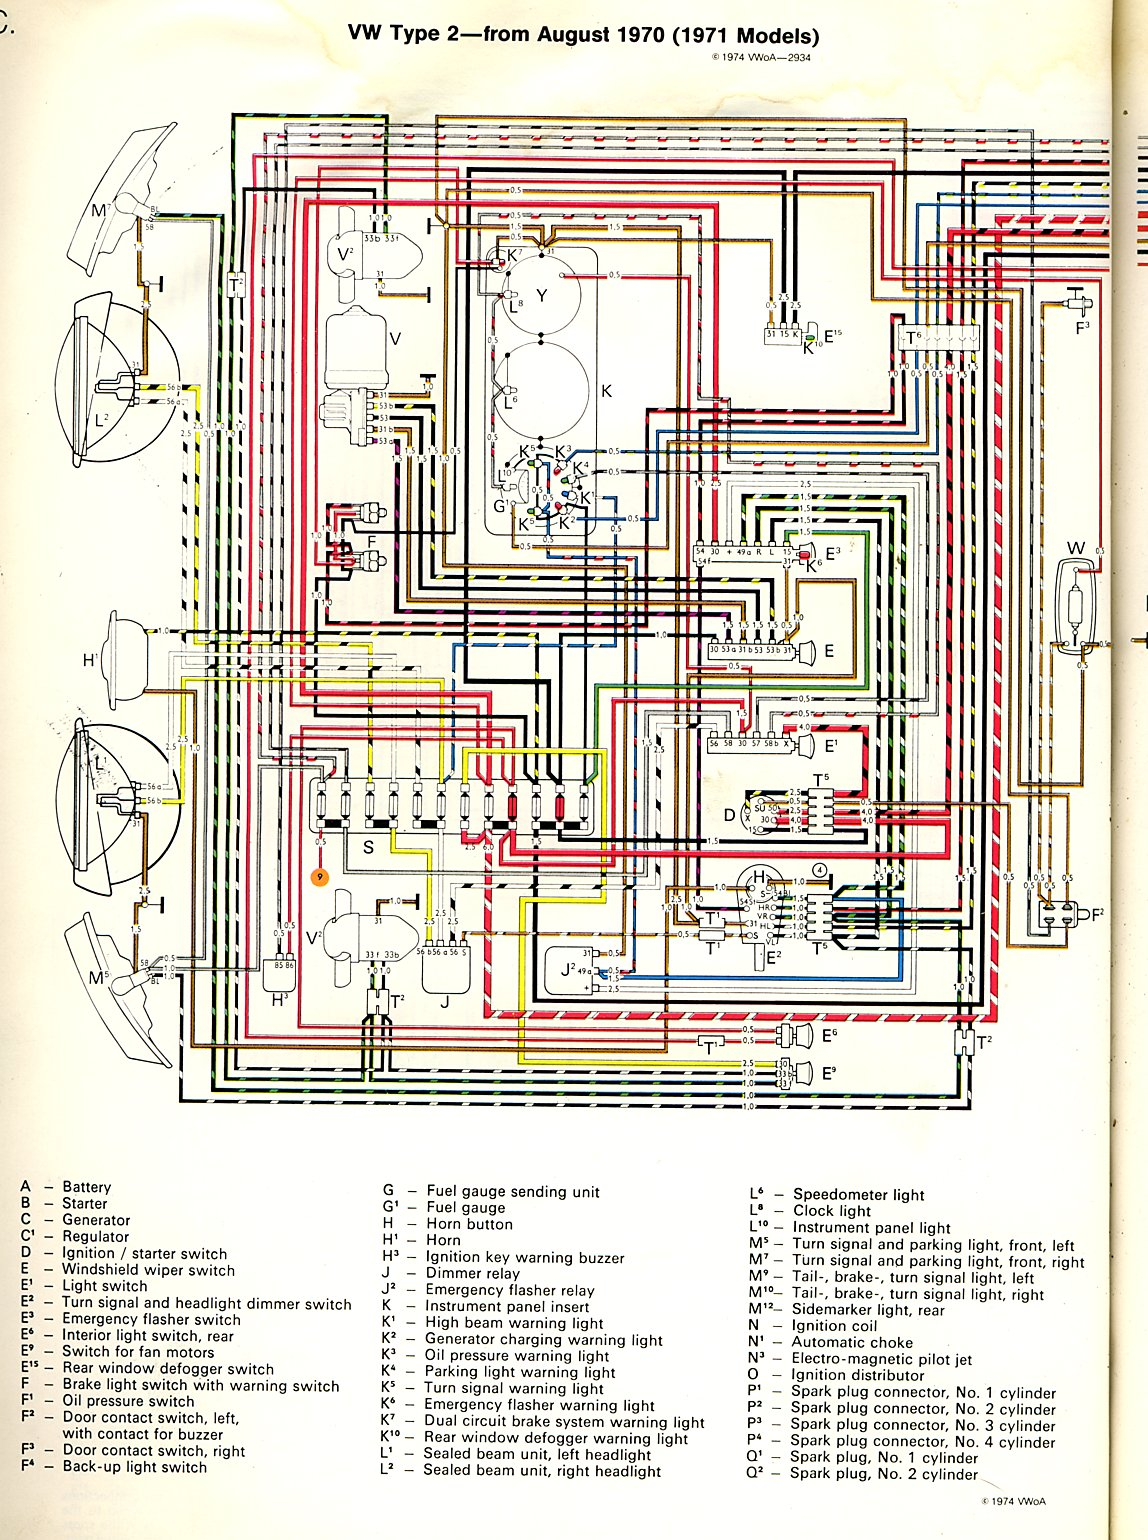 1966 Vw Wiring Diagram Everything About Super Beetle Fuse Box 71 Volkswagen Get Free Buggy